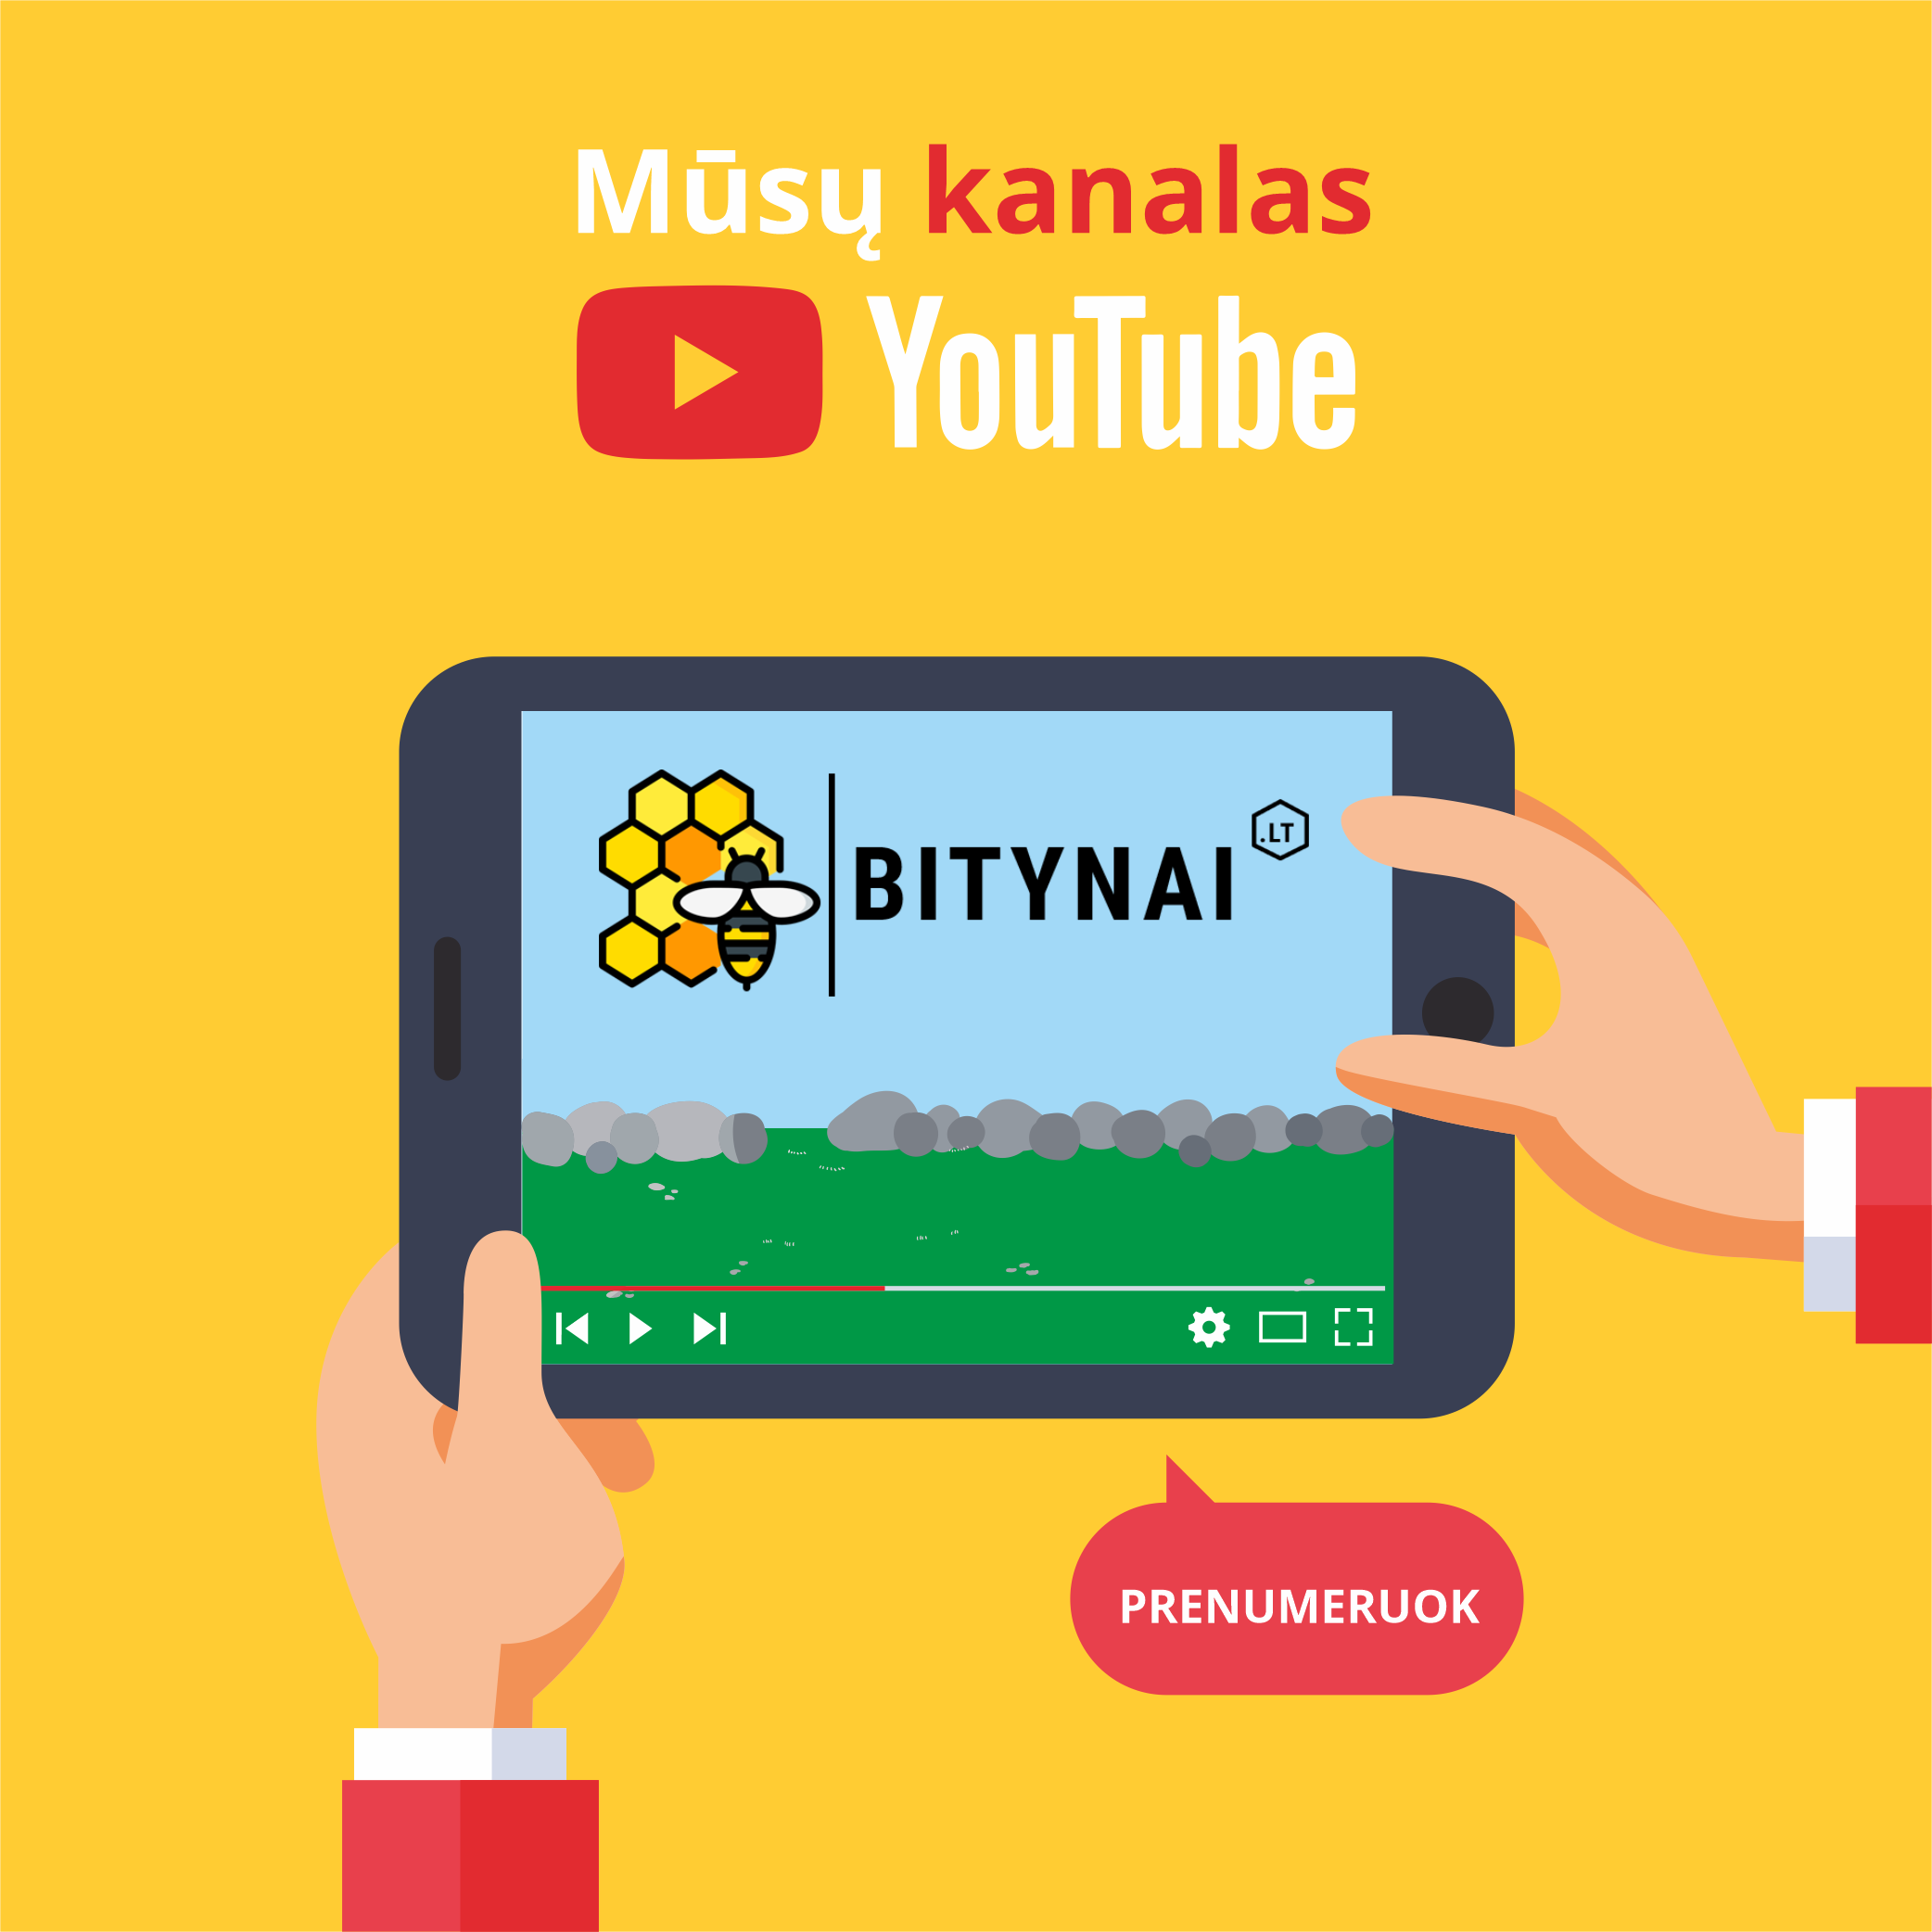 Youtube kanalas Bitynai.lt